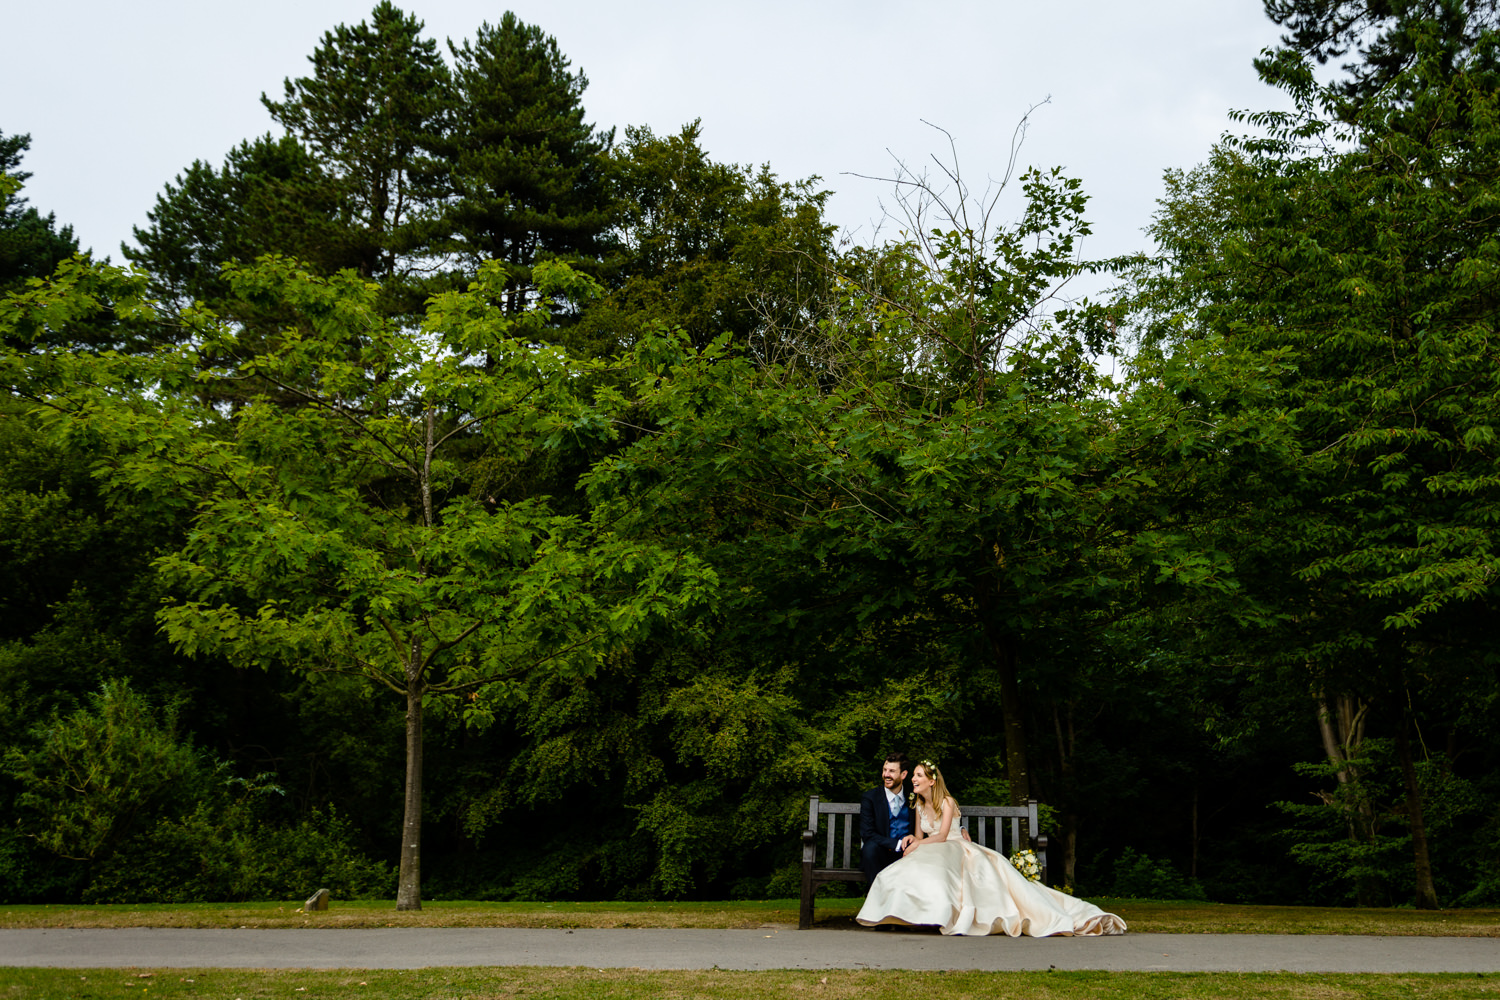 Bride and groom relaxing on a bench, wedding	photos	Whirlowbrook Hall